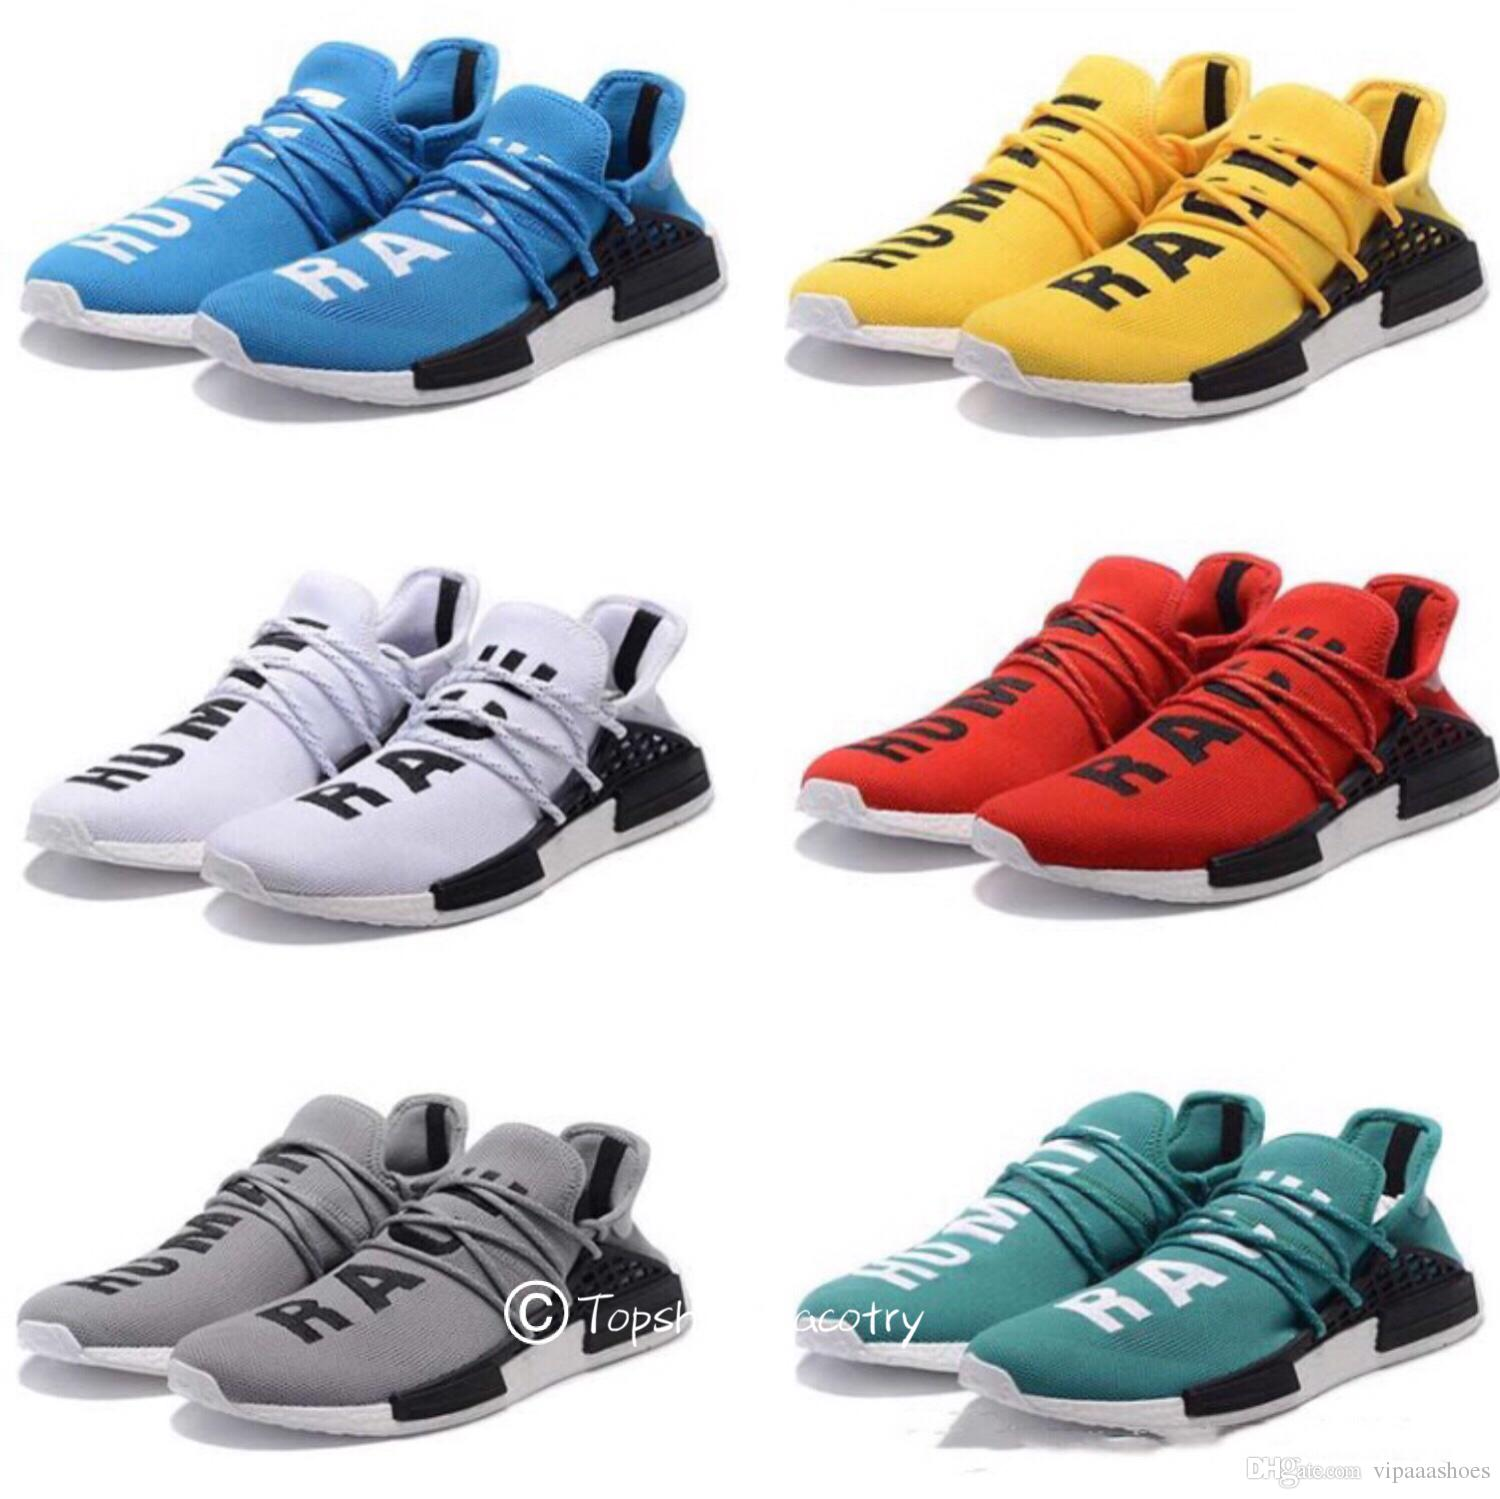 1942783e907ca 2019 2018 Human Race Trail Running Shoes Men Women Pharrell Williams HU  Runner Yellow Black White Red Green Grey Blue Sport Runner Sneaker A01 From  ...